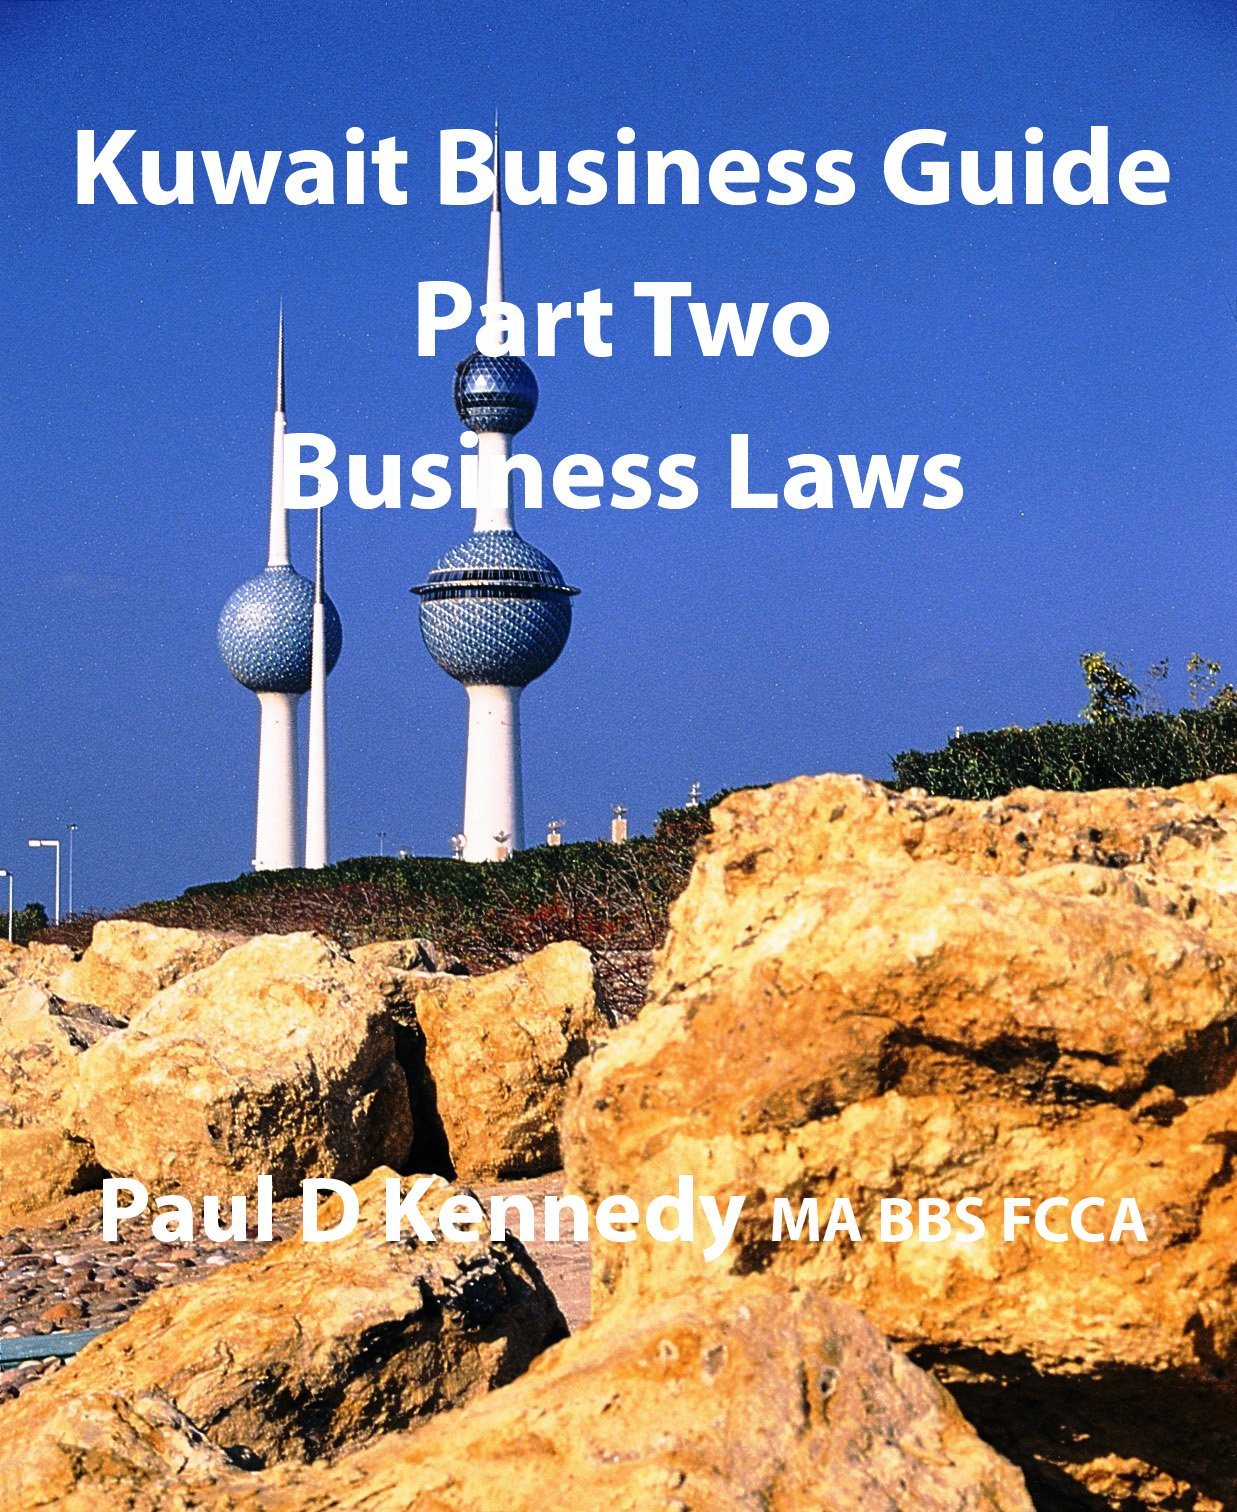 Kuwait Business Guide Part Two: Business Laws